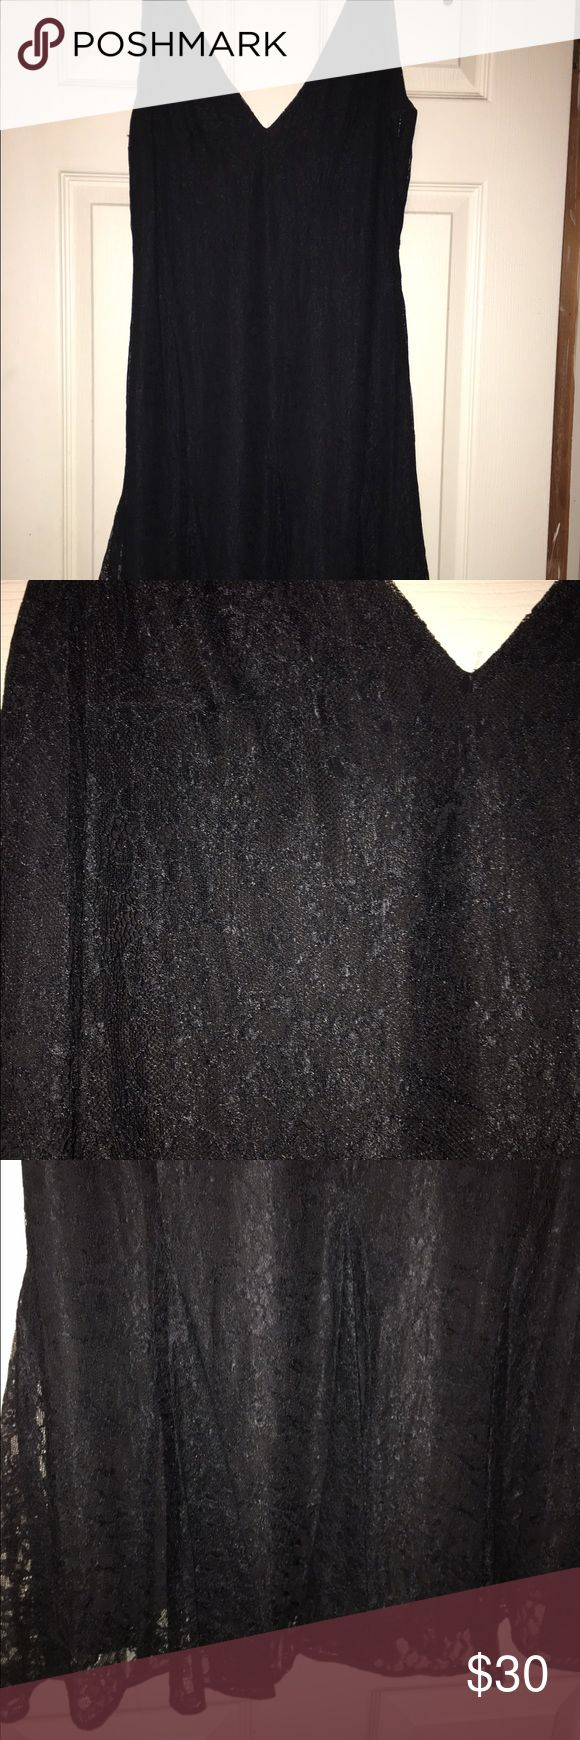 "Lauren Ralph Lauren LBD Little Black Lace Dress Lace with Full Lining. NWOT. 39"" from shoulder to hem. Size 6 TTS Lauren Ralph Lauren Dresses"